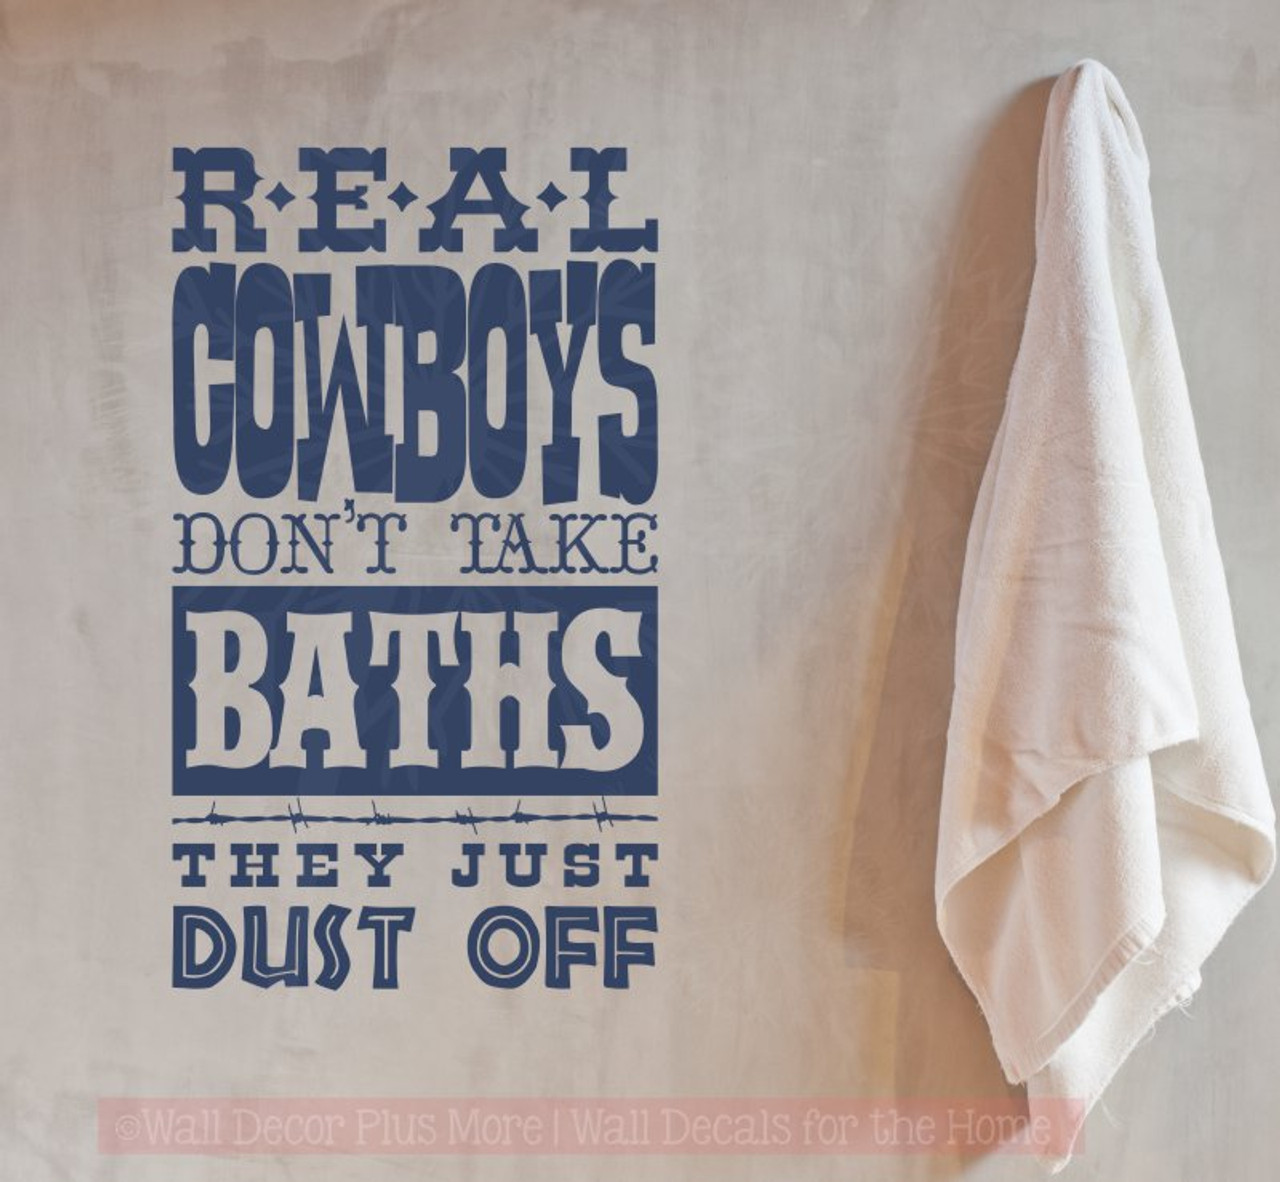 Real Cowboys Dust Off Western Wall Decals Quotes Wall Stickers